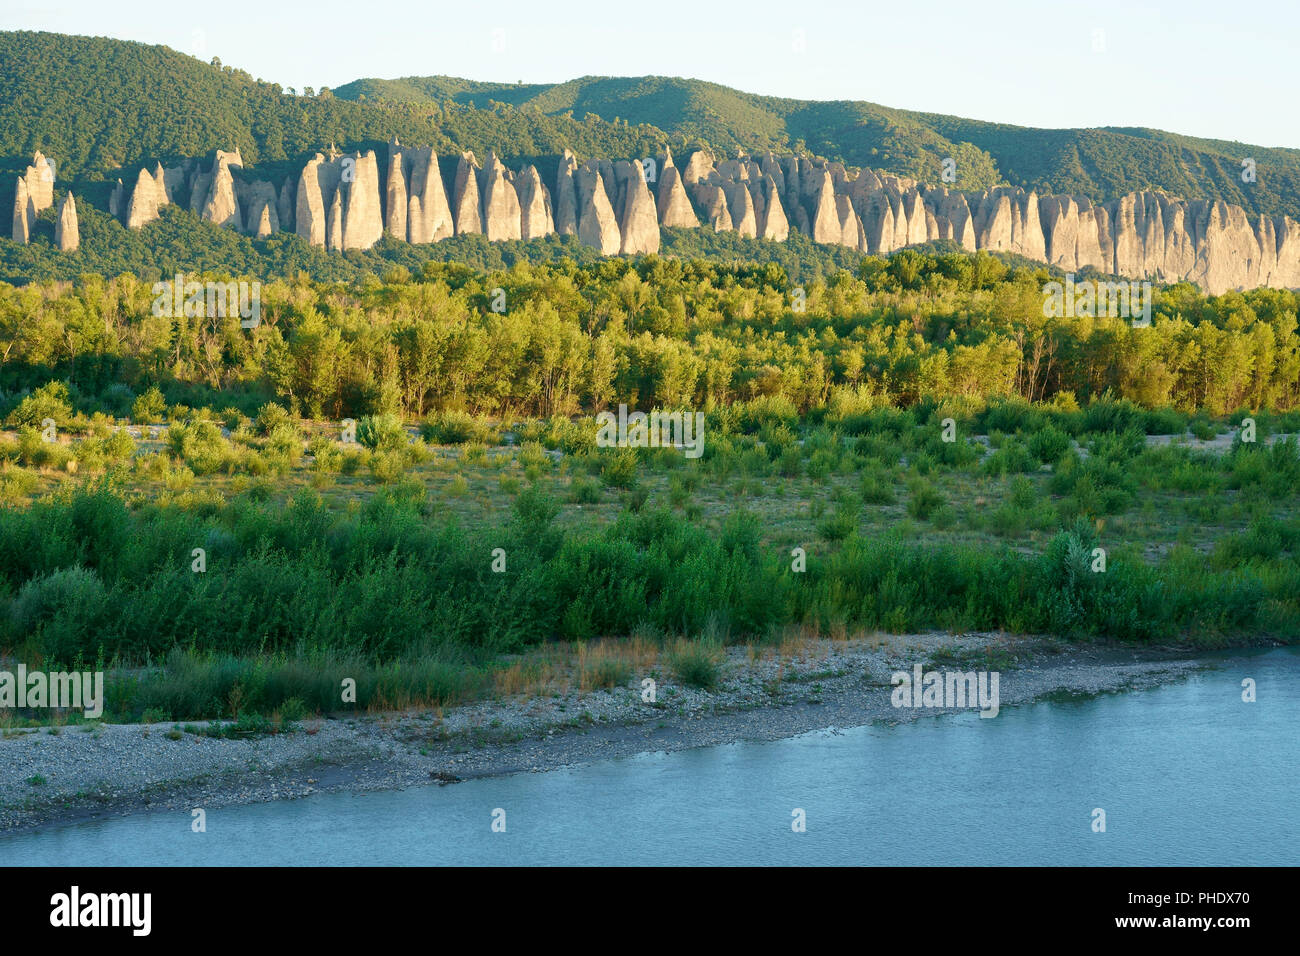 LONGITUDINAL ROCK FORMATION OF PUDDINGSTONE CALLED 'THE PENITENTS' BETWEEN THE VALENSOLE PLATEAU AND THE DURANCE RIVER. Les Mées, Provence, France. - Stock Image